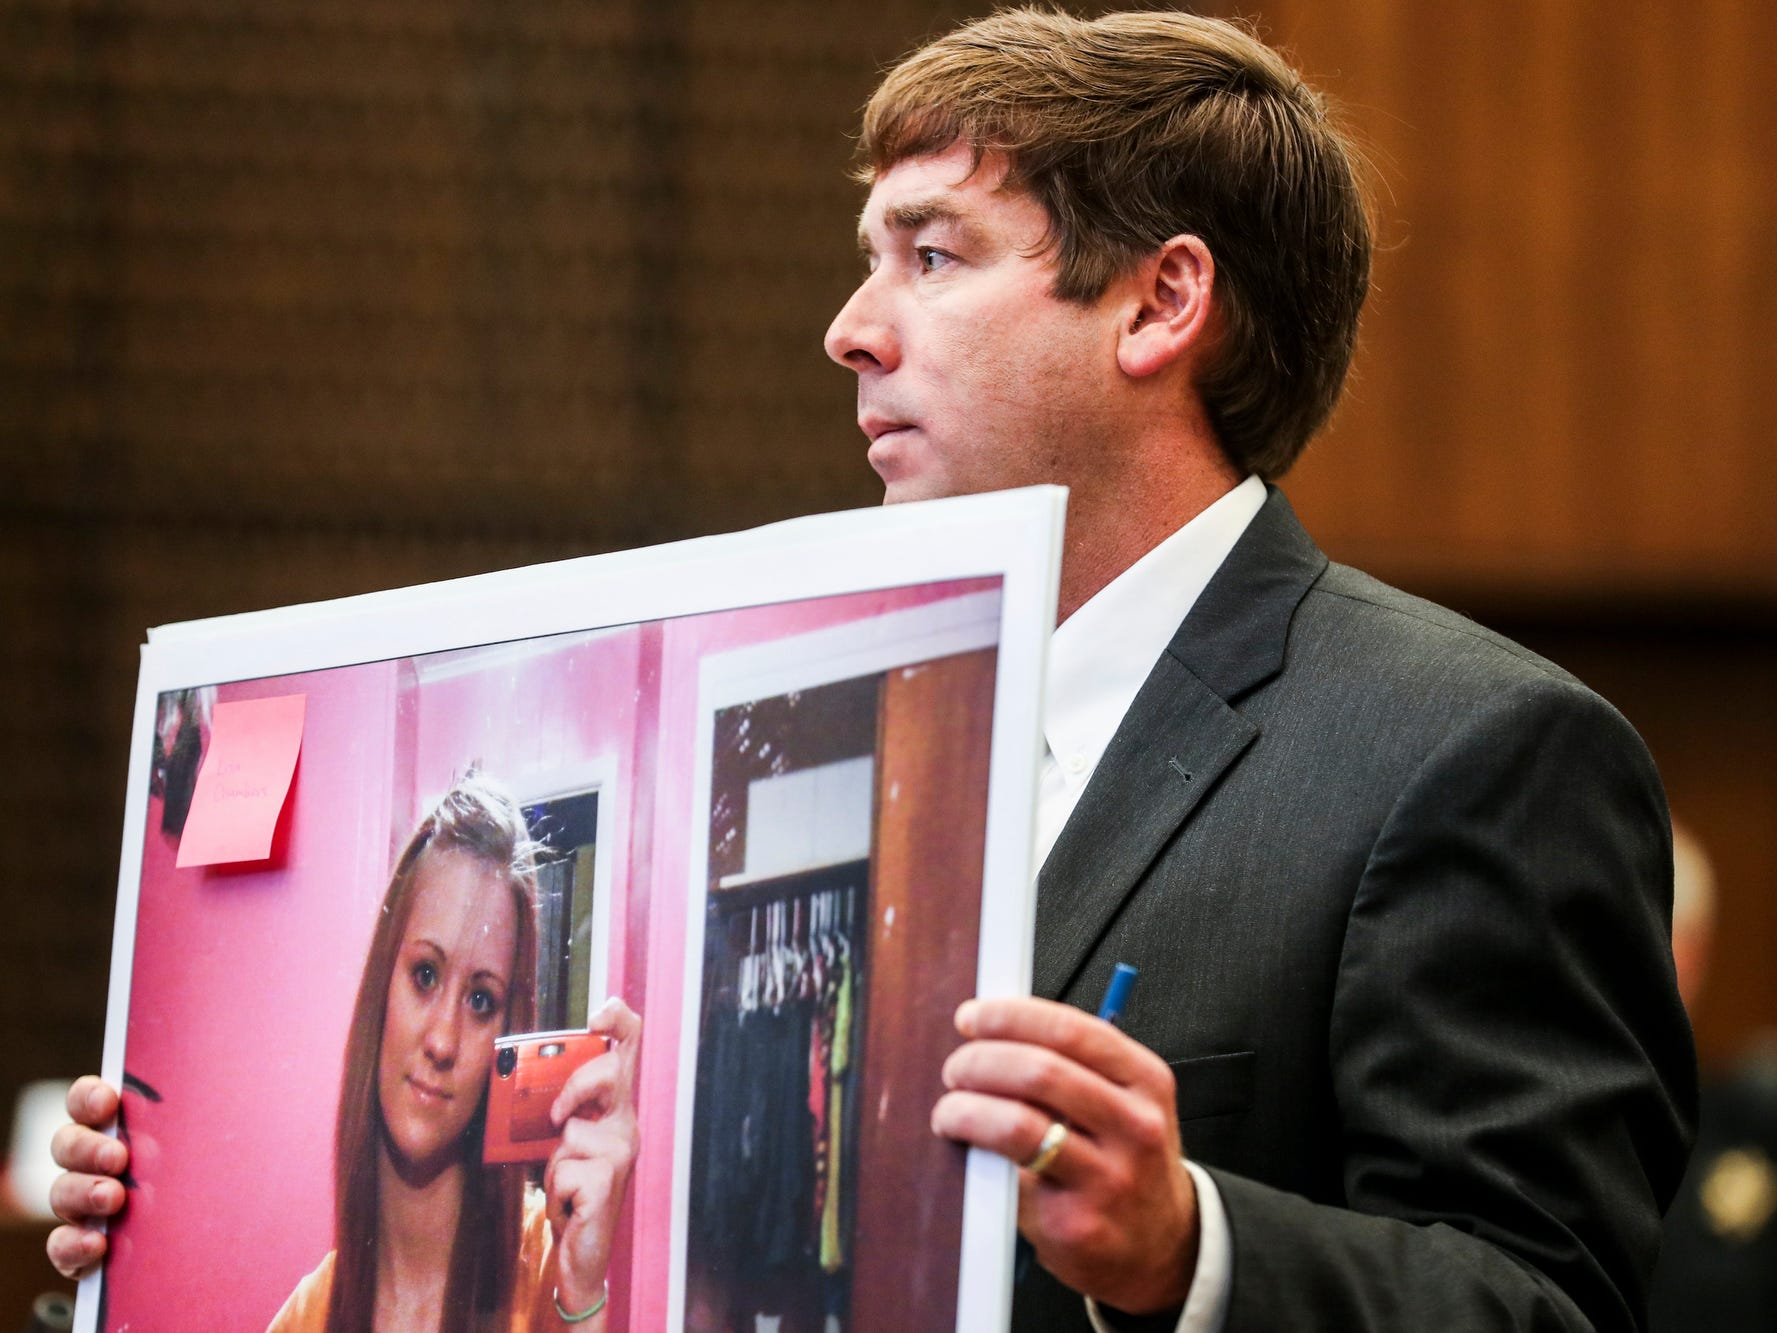 Deputy Prosecutor Jay Hale holds up a picture of Jessica Chambers on the first day of the retrial of Quinton Tellis in Batesville, Miss., Tuesday, Sept. 25 2018. Tellis is charged with burning 19-year-old Jessica Chambers to death almost three years ago on Dec. 6, 2014. Tellis has pleaded not guilty to the murder.